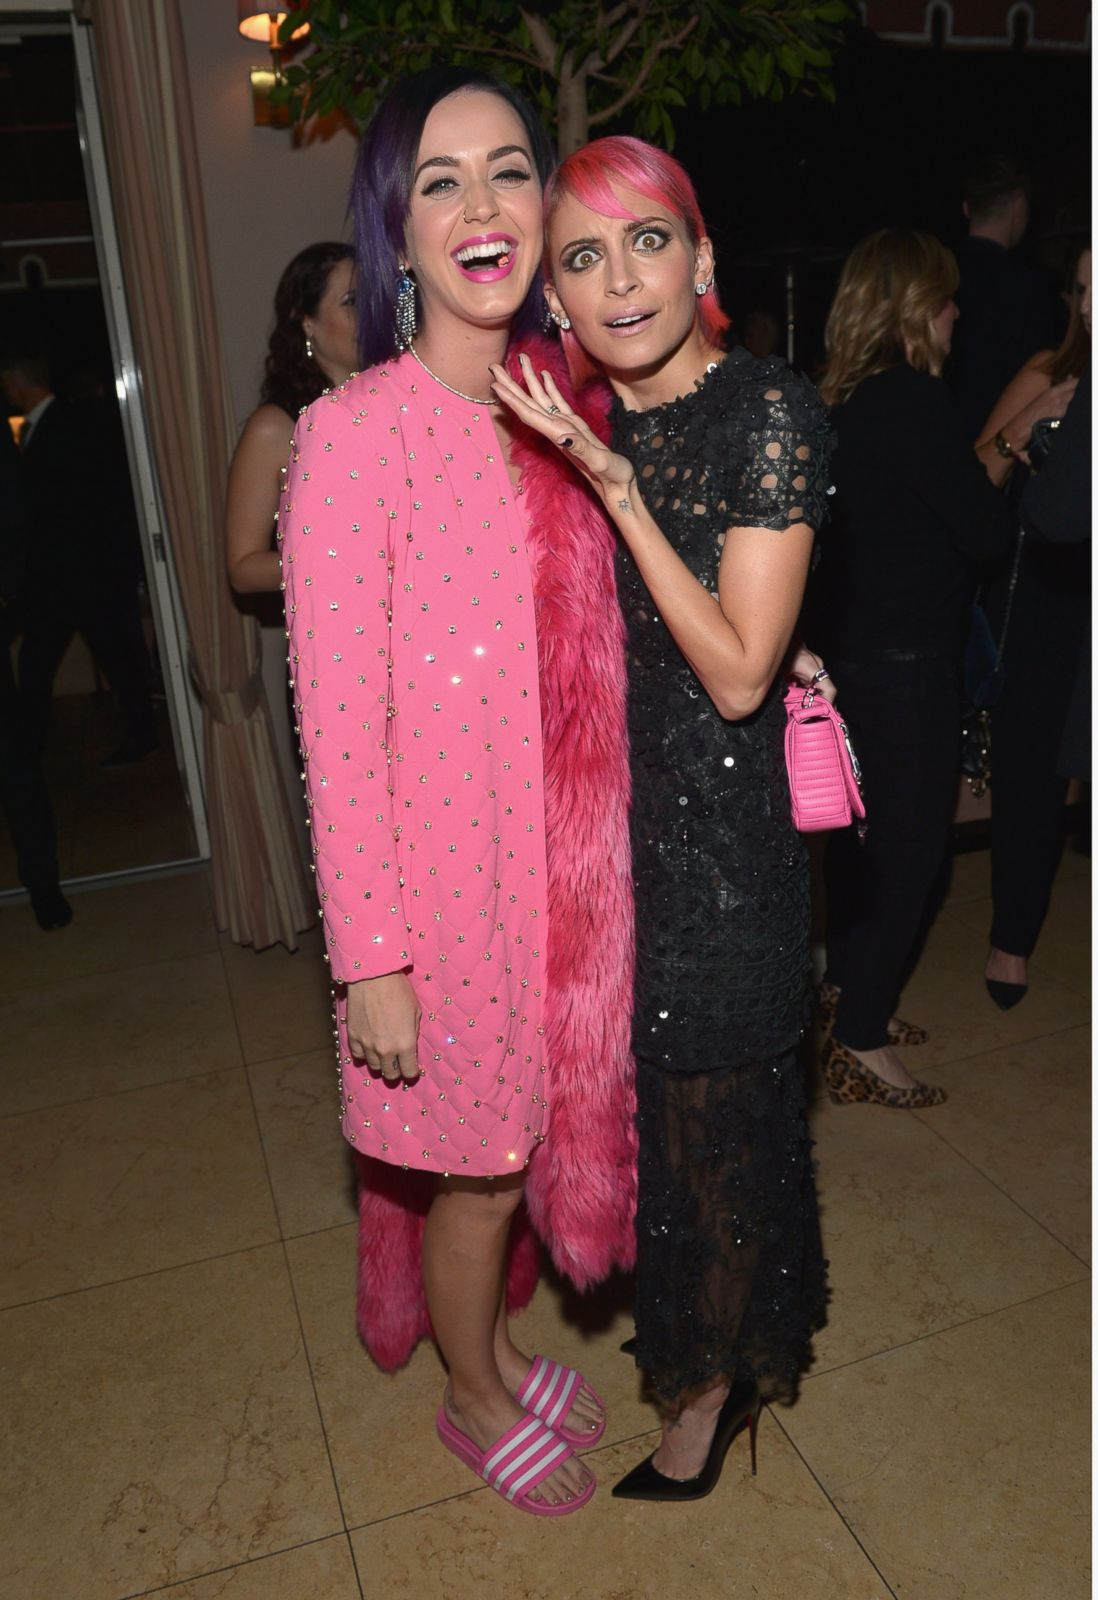 Katy Perry and Nicole Richie Make a Colorful Pair Picture | January ...